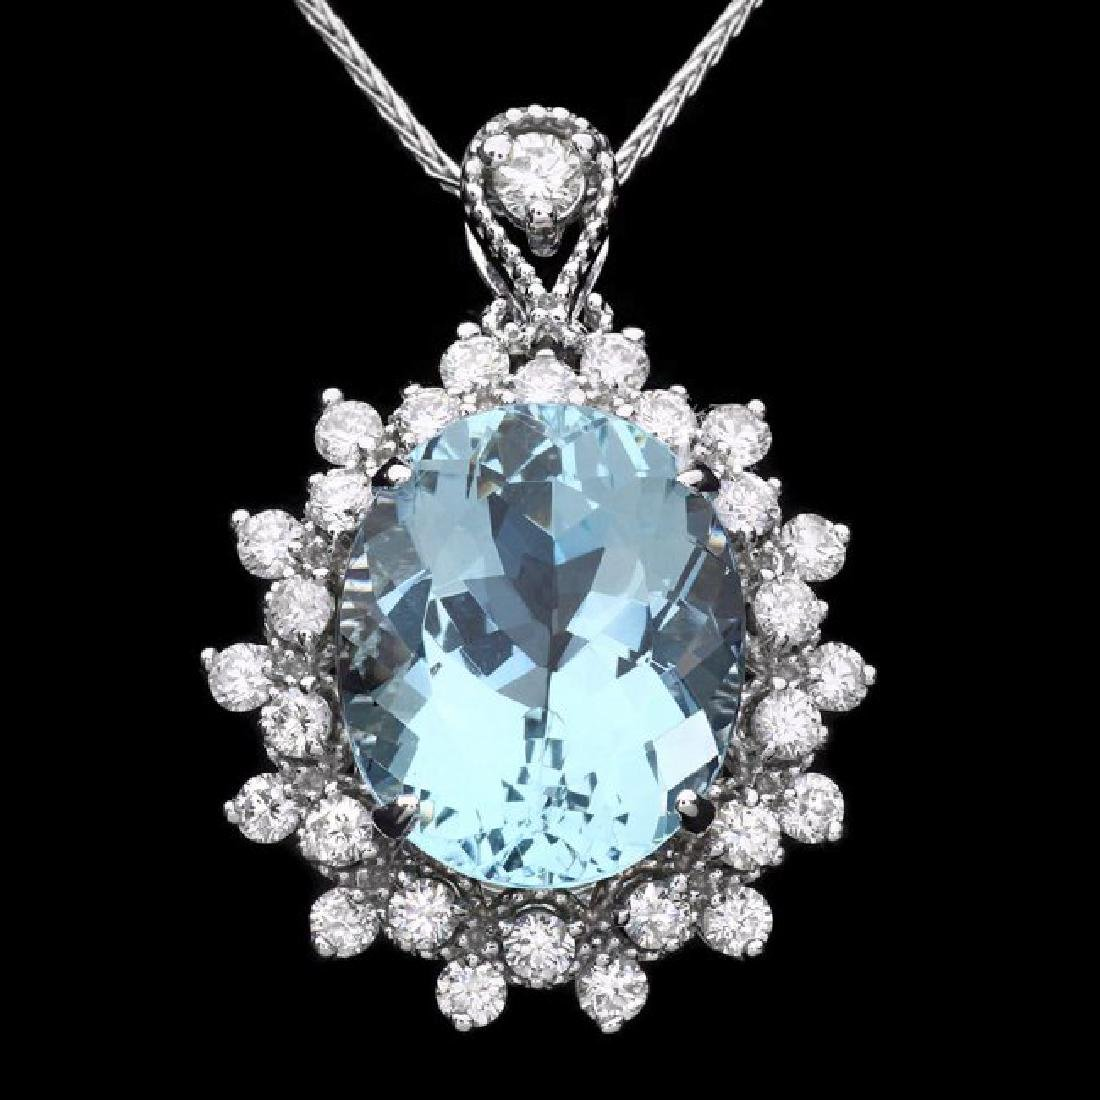 14k Gold 5.50ct Aquamarine 0.80ct Diamond Pendant